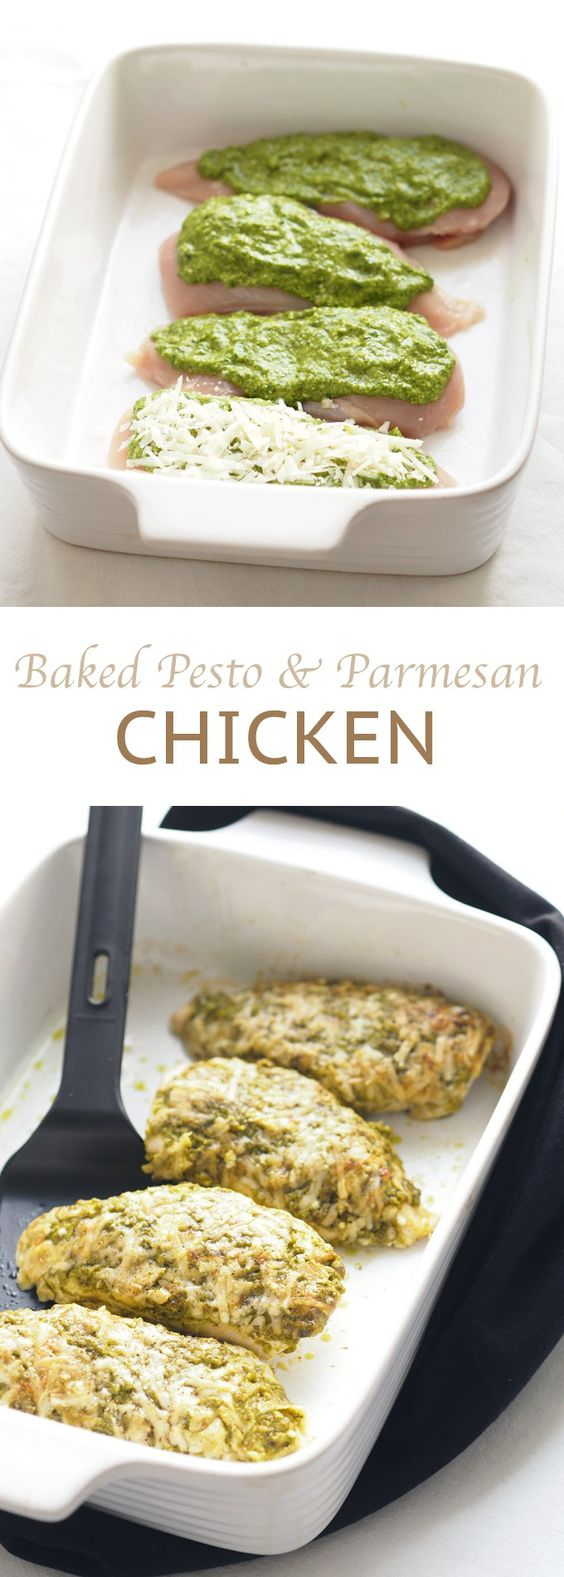 BAKED PESTO PARMESAN CHICKEN #recipes #healthychicken #chickenrecipes #healthychickenrecipes #food #foodporn #healthy #yummy #instafood #foodie #delicious #dinner #breakfast #dessert #lunch #vegan #cake #eatclean #homemade #diet #healthyfood #cleaneating #foodstagram